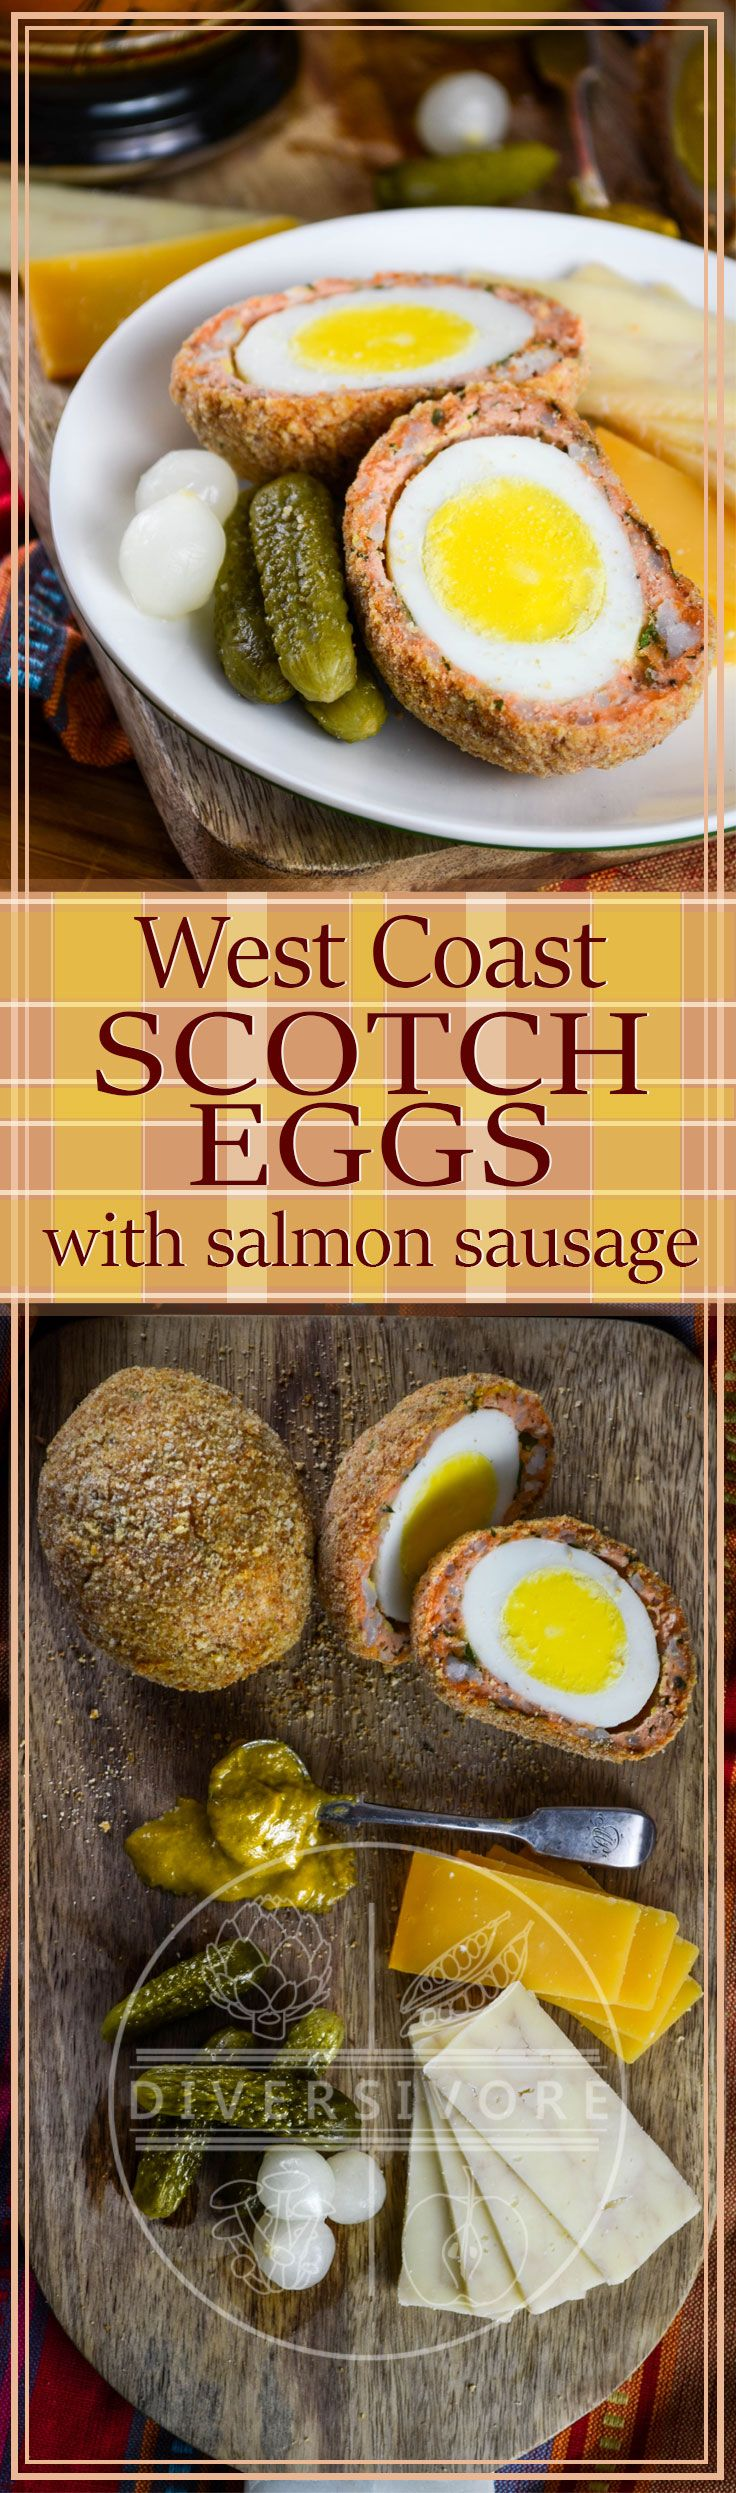 West Coast Scotch Eggs, a pescetarian treat made with fresh wild salmon, and baked instead of fried.